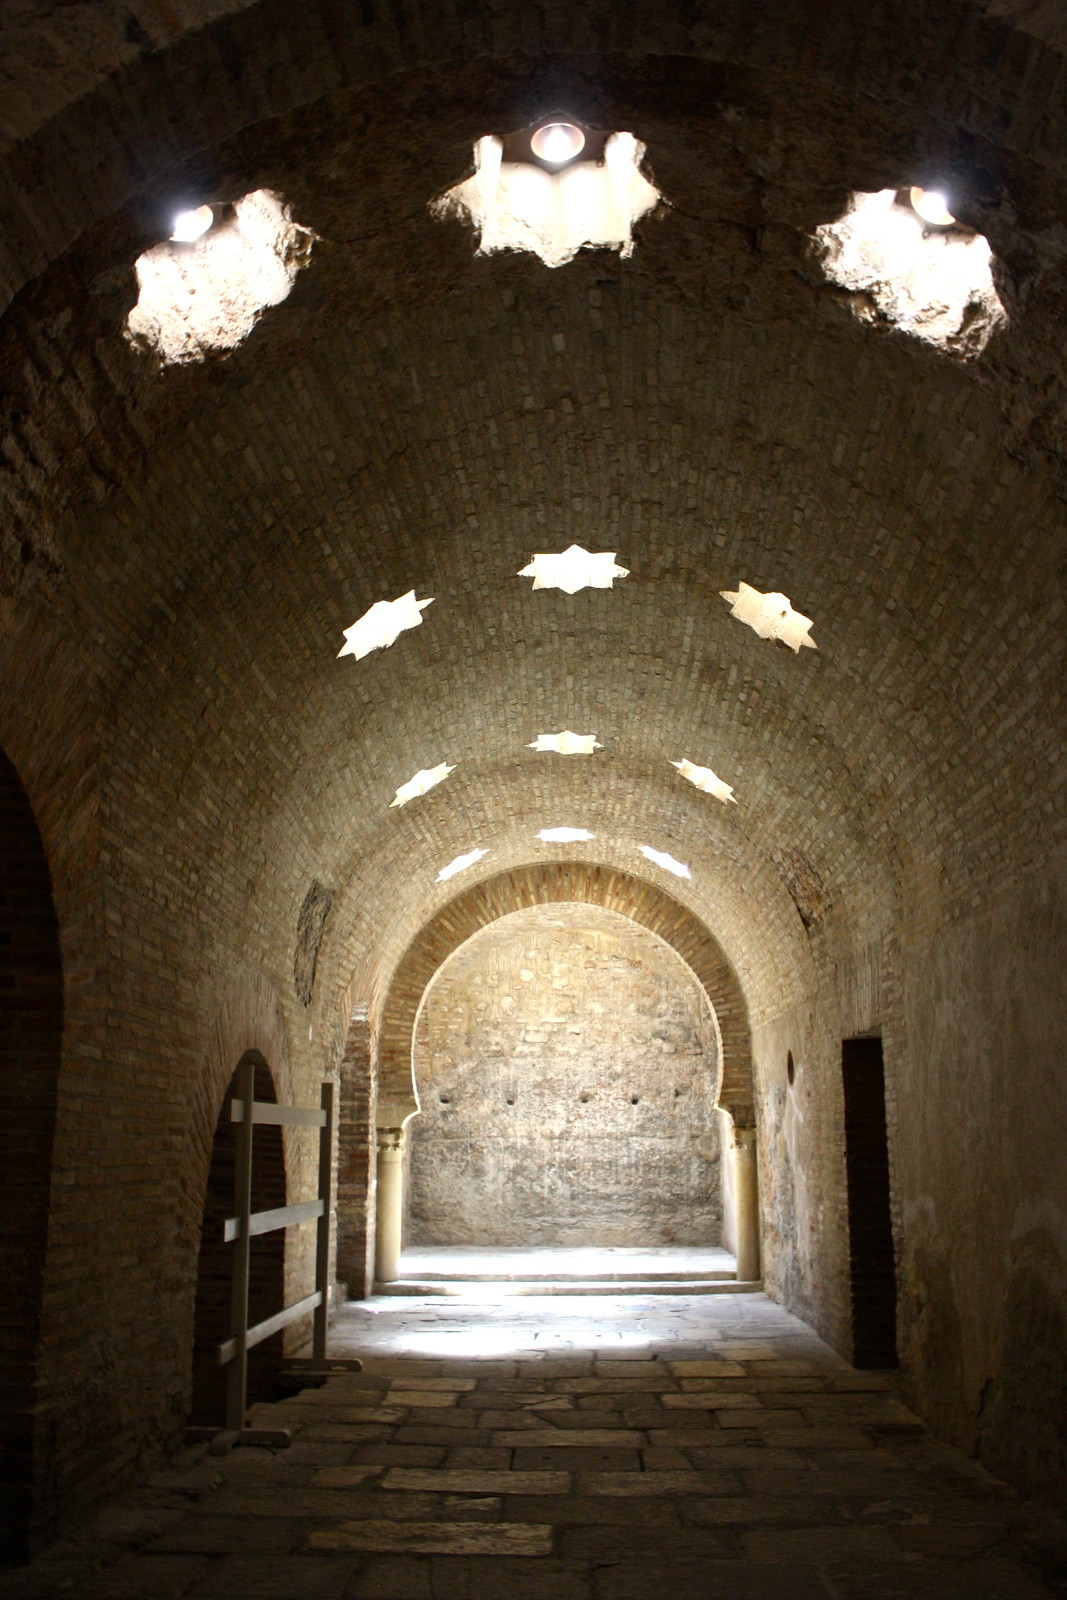 Chamber inside the Arab baths of Jaén, Spain